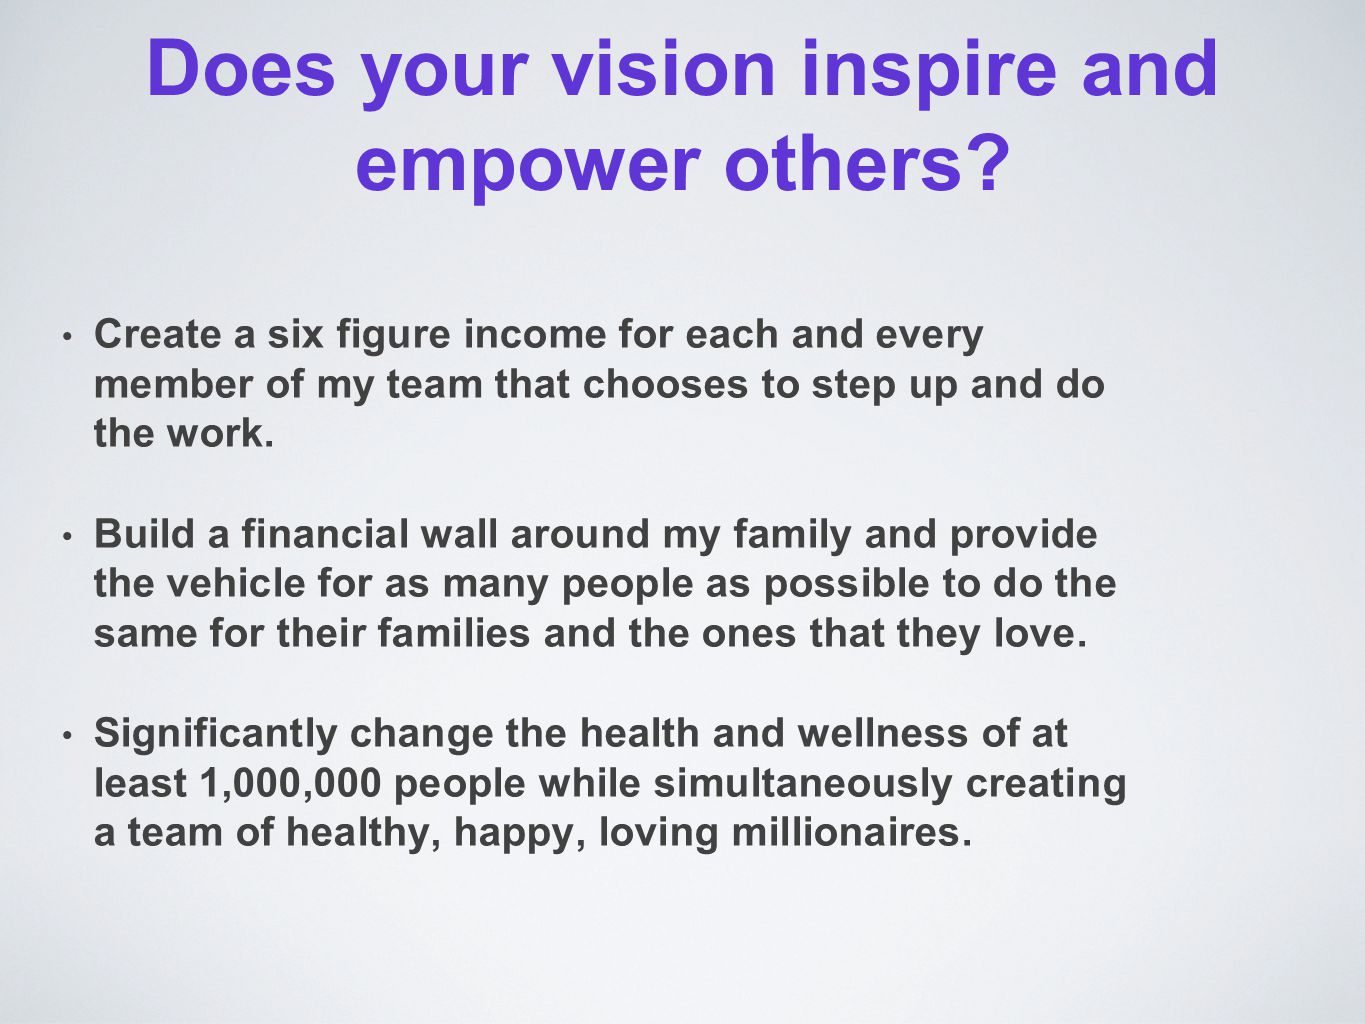 Does your vision inspire and empower others? Create a six figure income for each and every member of my team that chooses to step up and do the work.